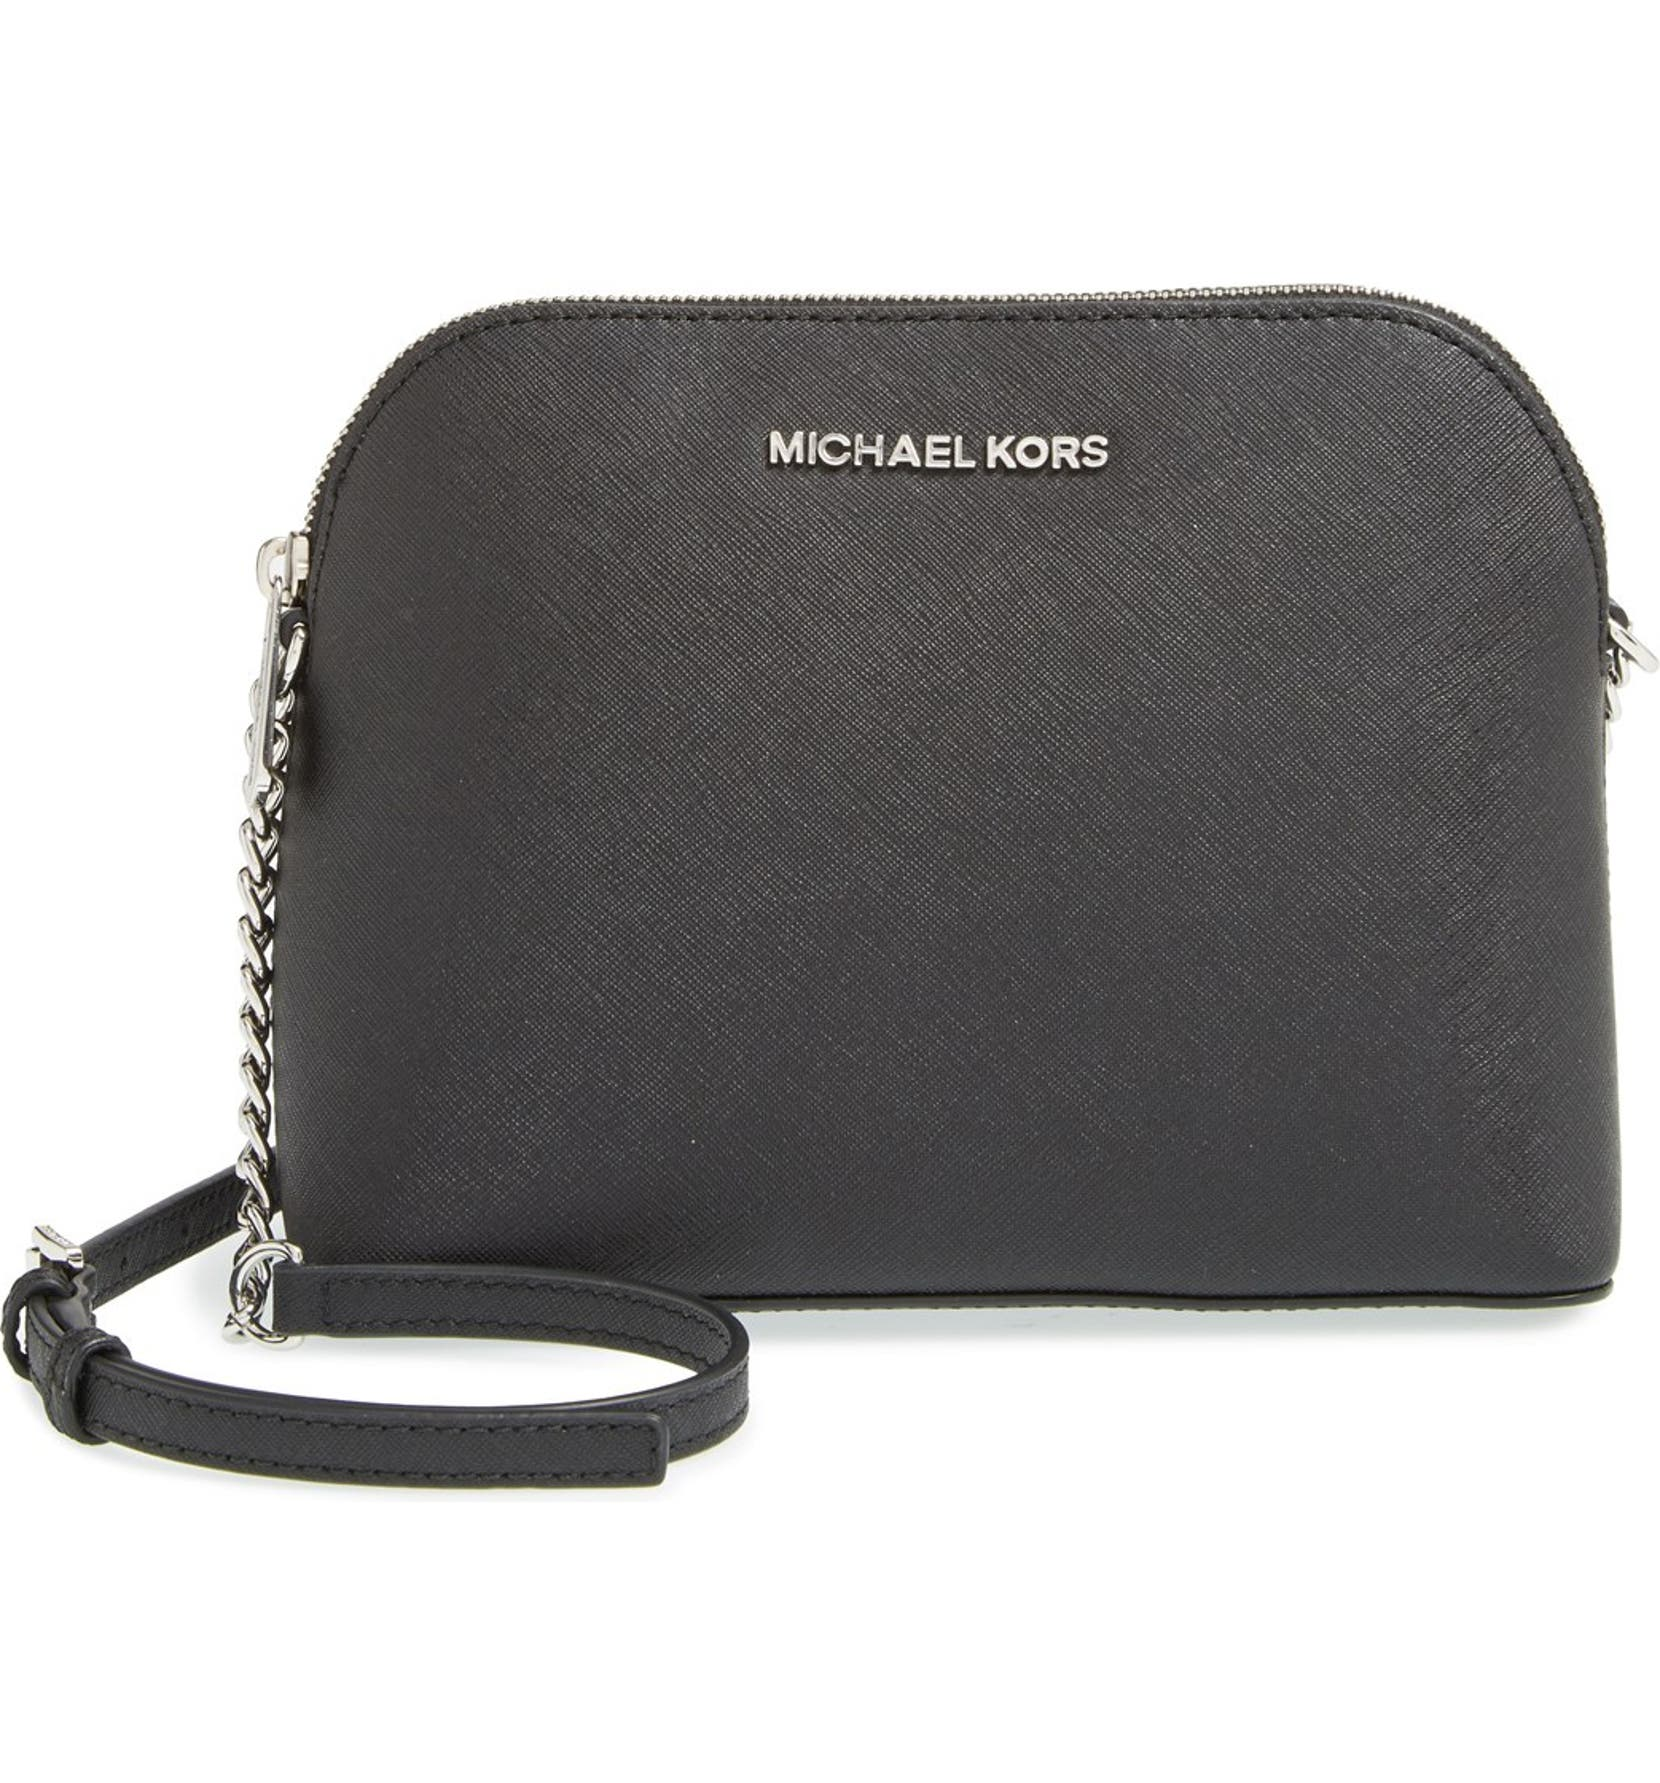 78c6f51f4856 MICHAEL Michael Kors 'Large Cindy' Saffiano Leather Crossbody Bag |  Nordstrom